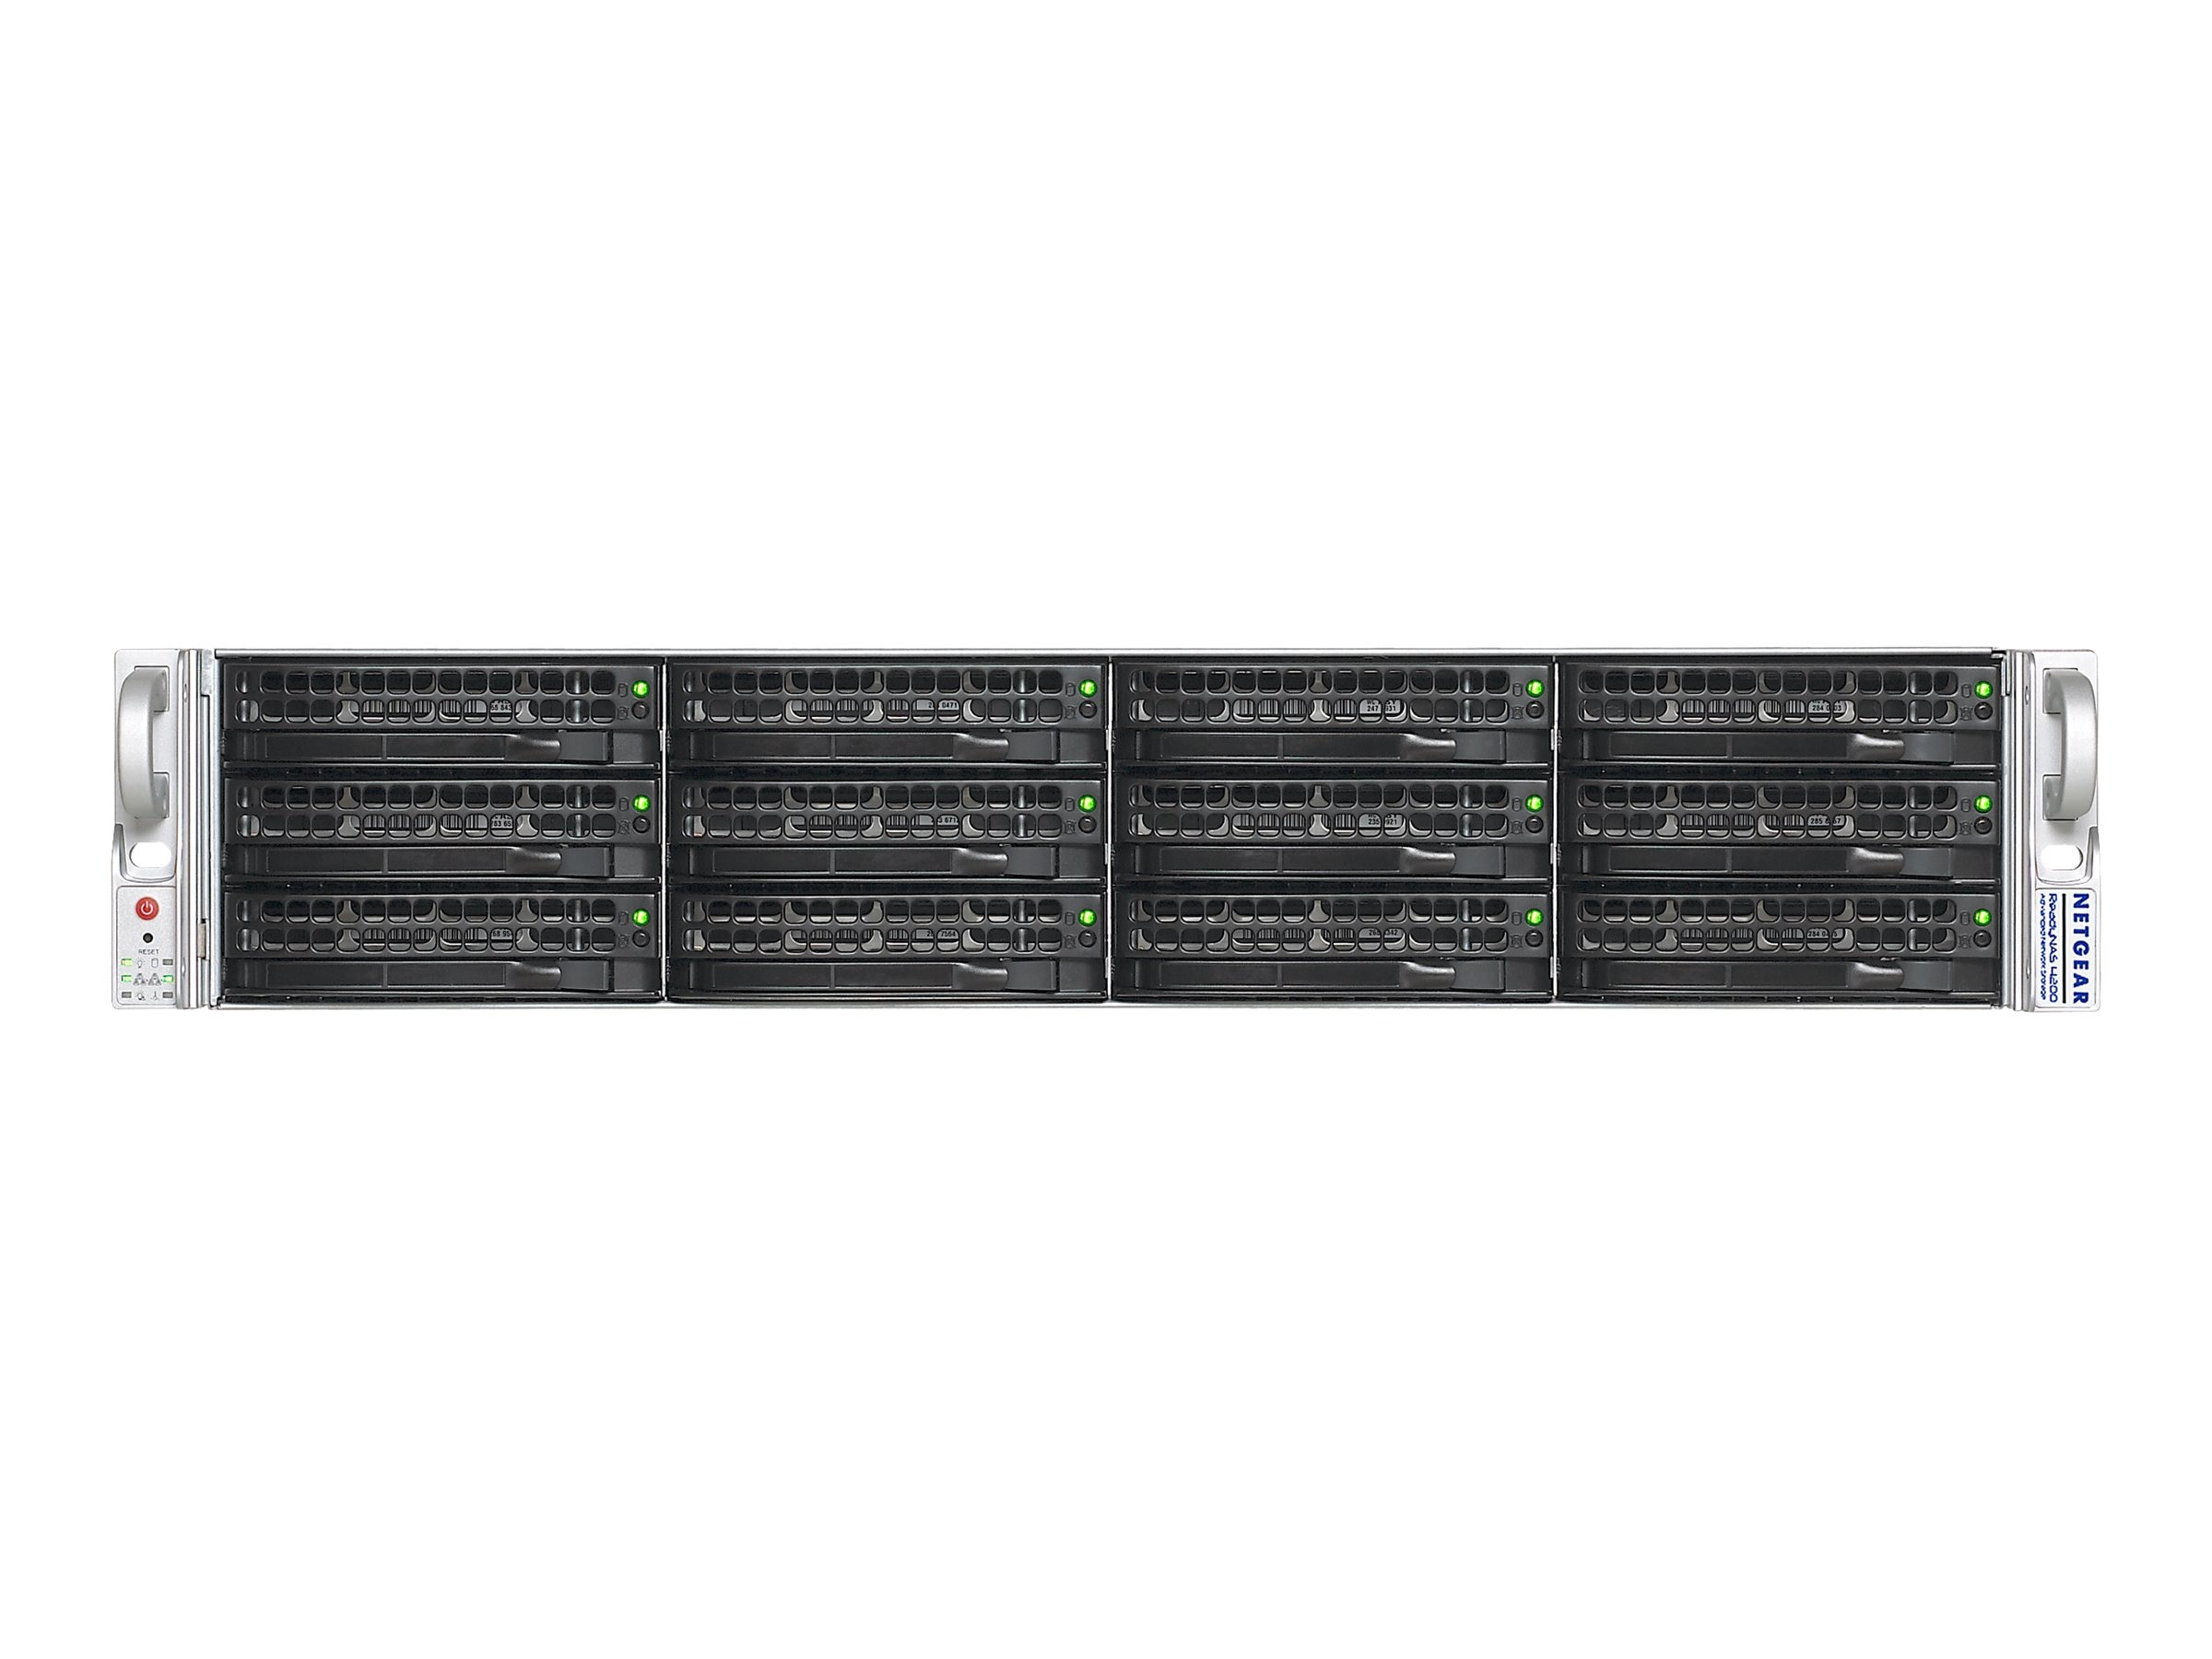 Netgear 12TB ReadyNAS 4200 Network Storage System w  10GbE, RN12G0620-100NAS, 11234849, Network Attached Storage